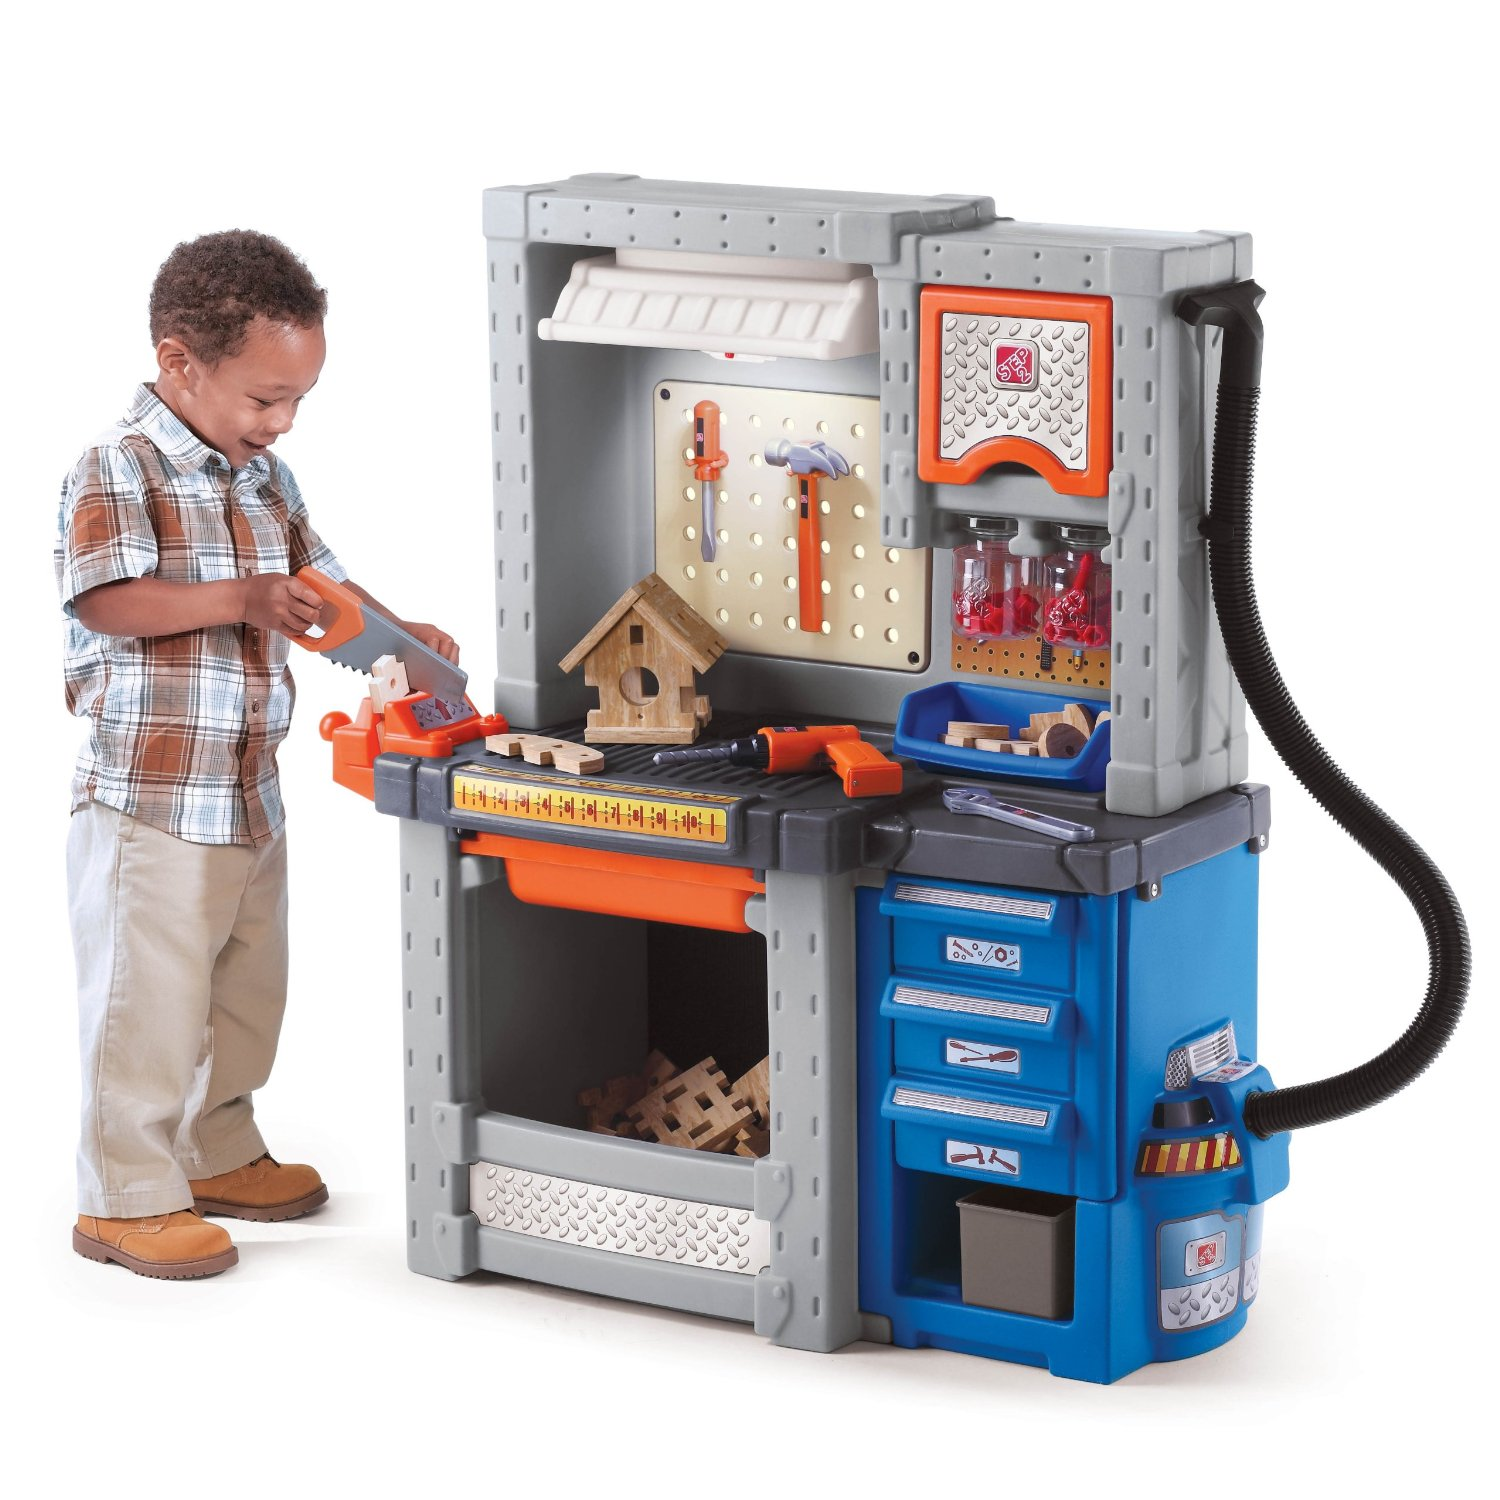 Top Toys For Boys Ages 5 8 : Toddler toys for boys